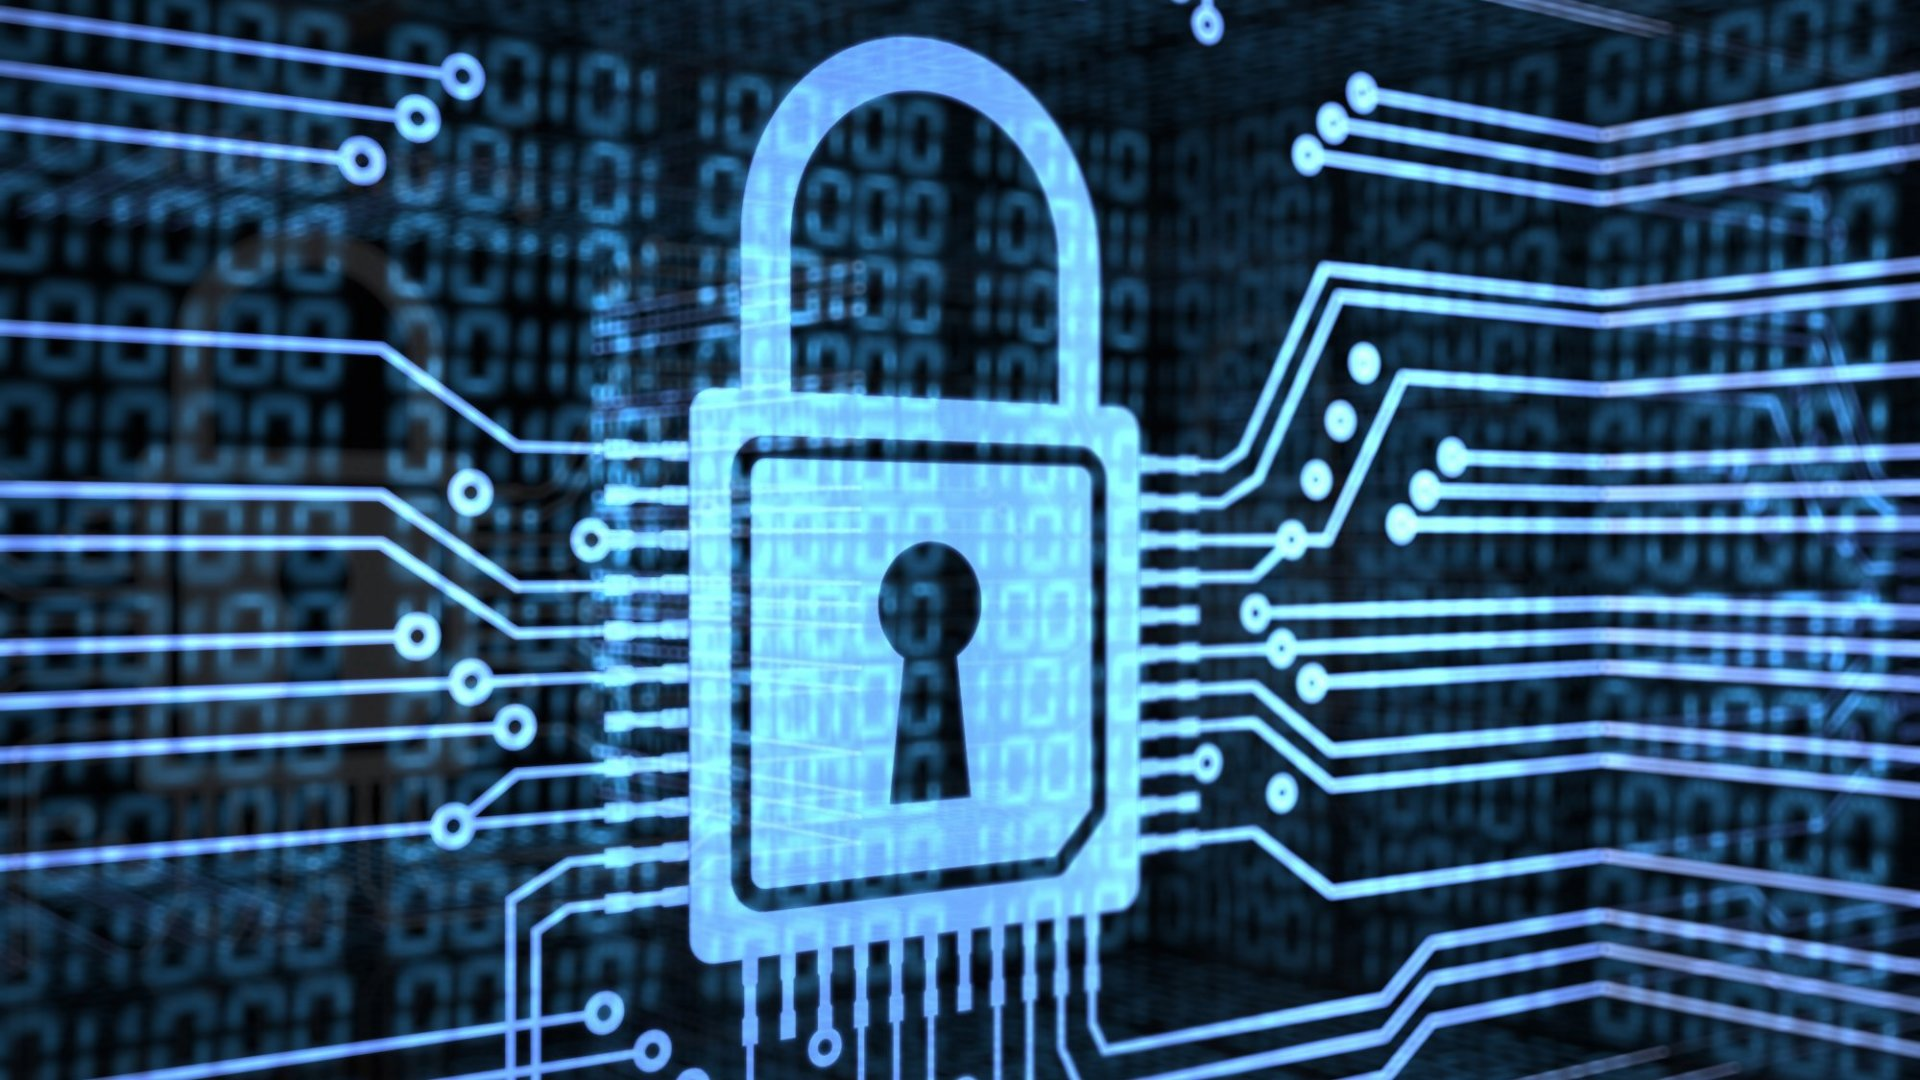 Survey Reveals Alarming Trend About CyberSecurity Advice